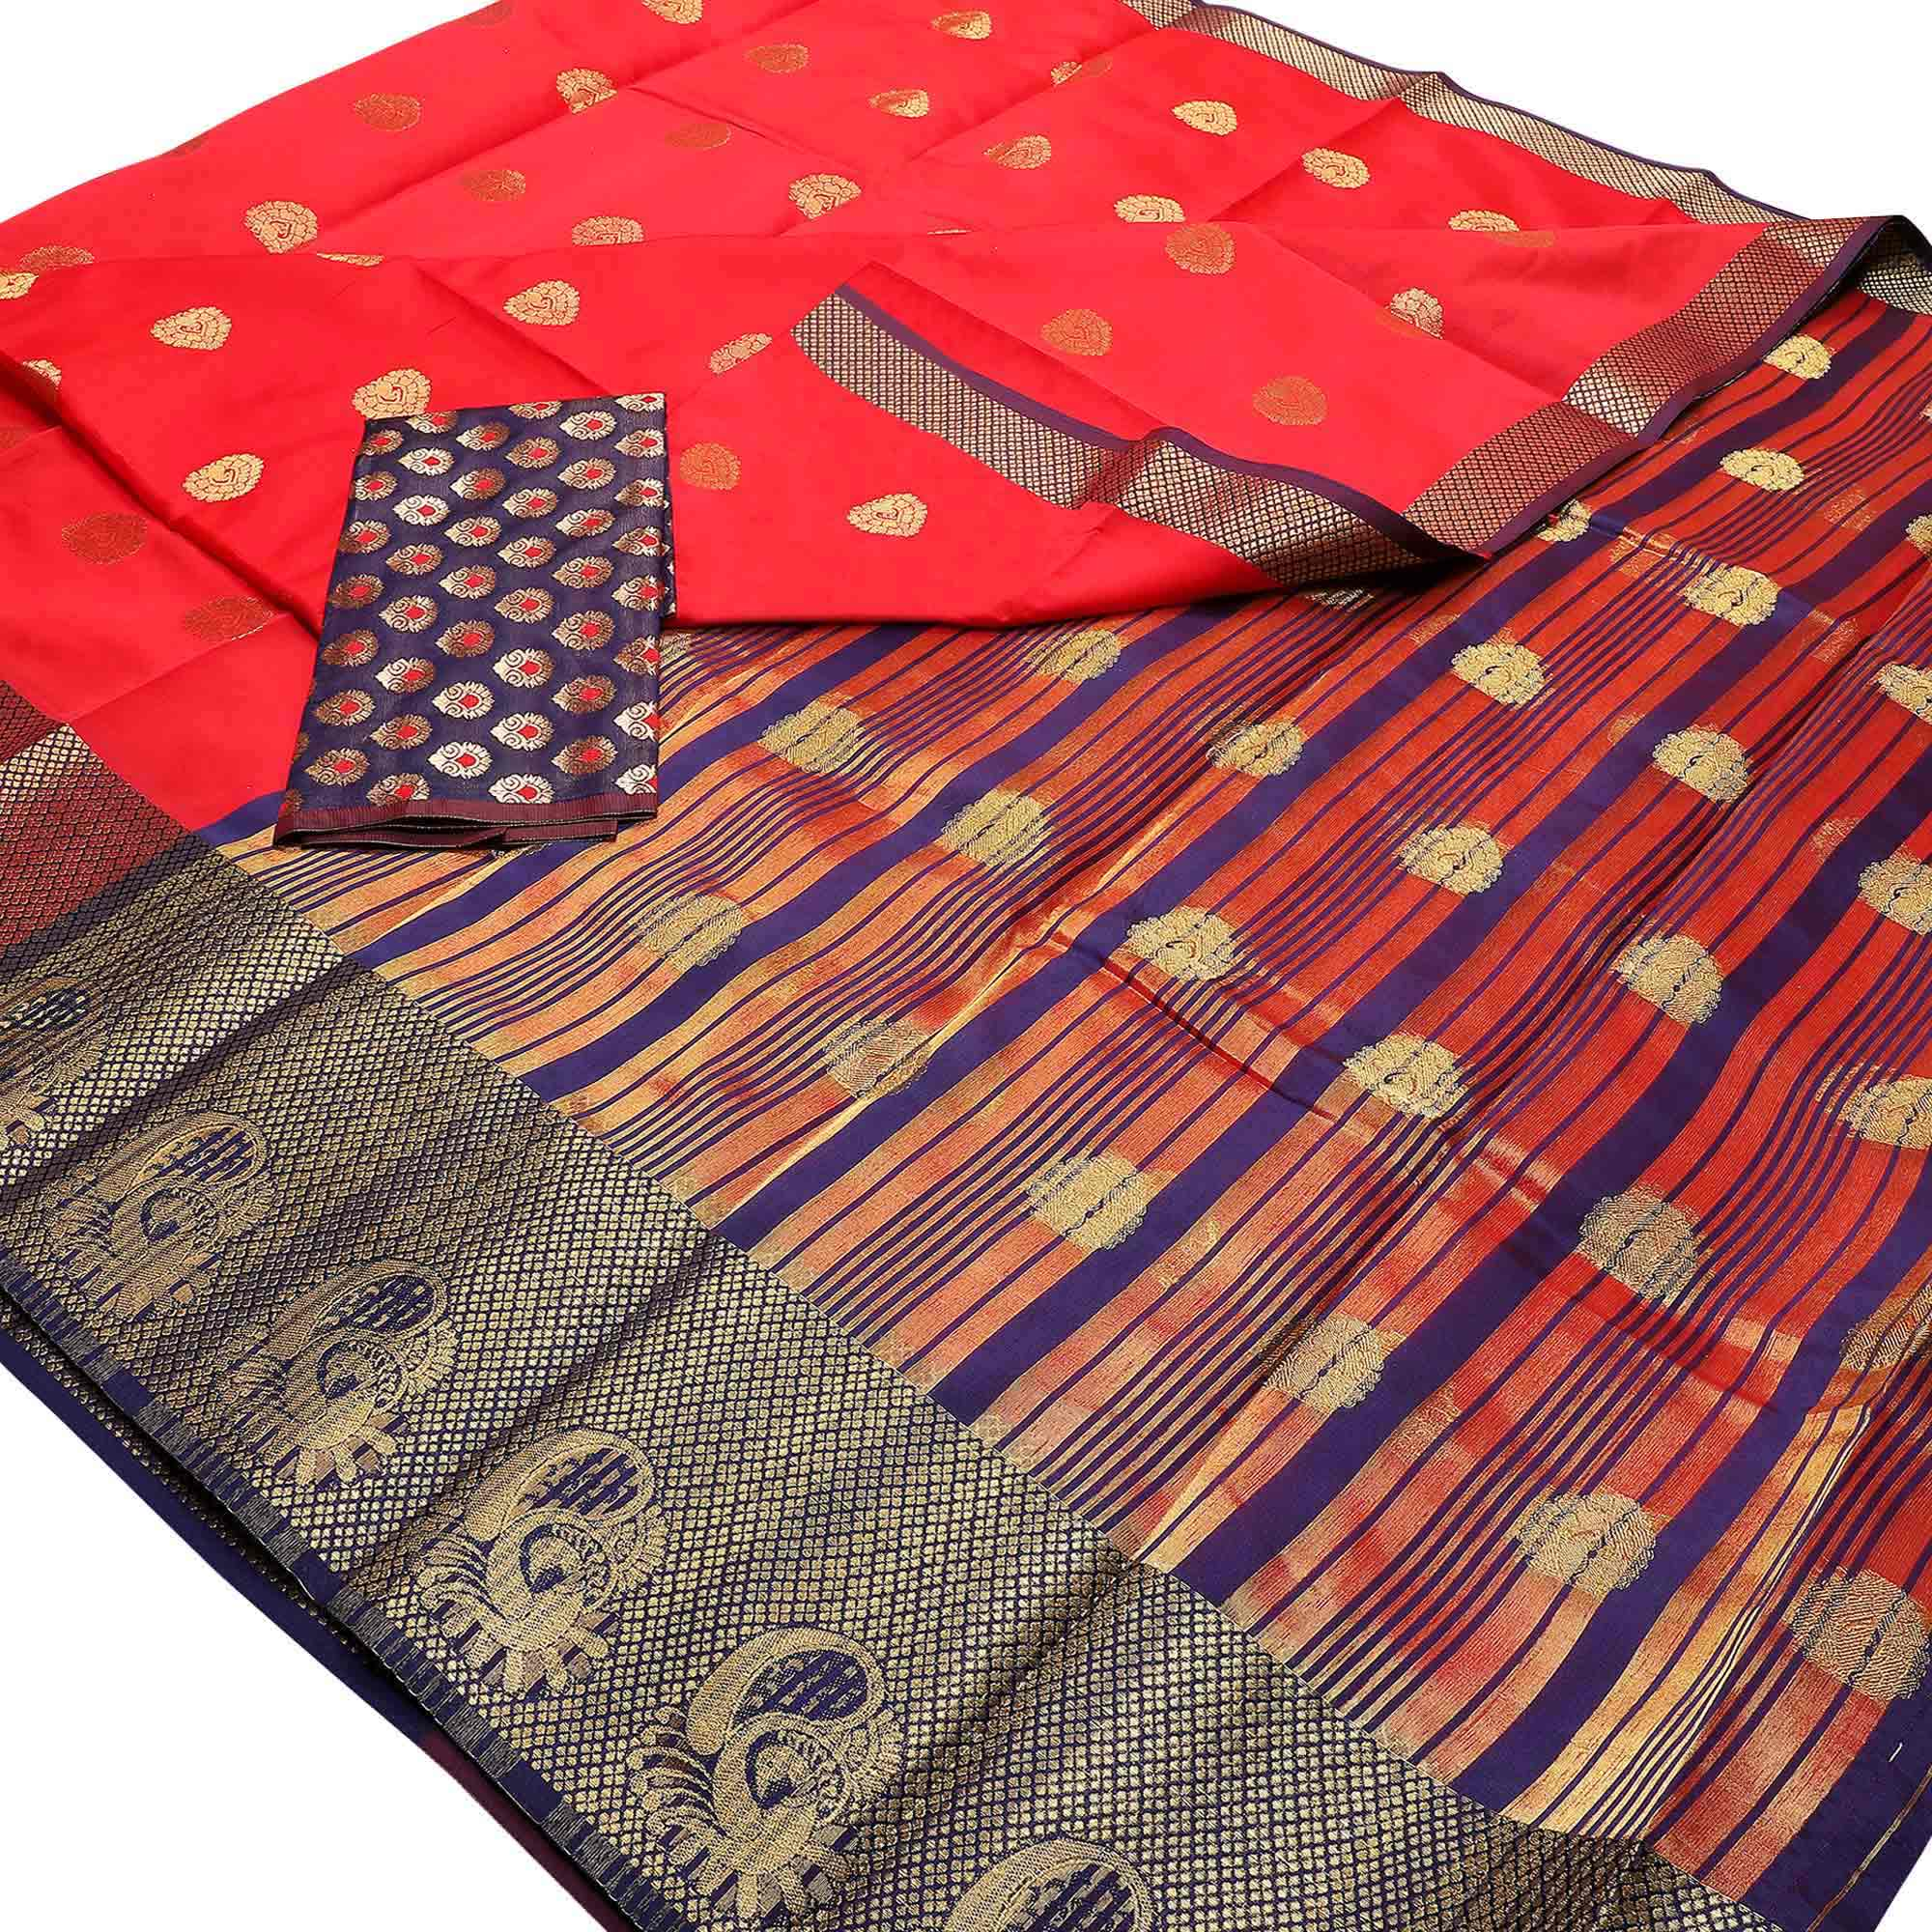 Elegant Festive Wear Woven Banarasi Silk Saree - Pack of 3